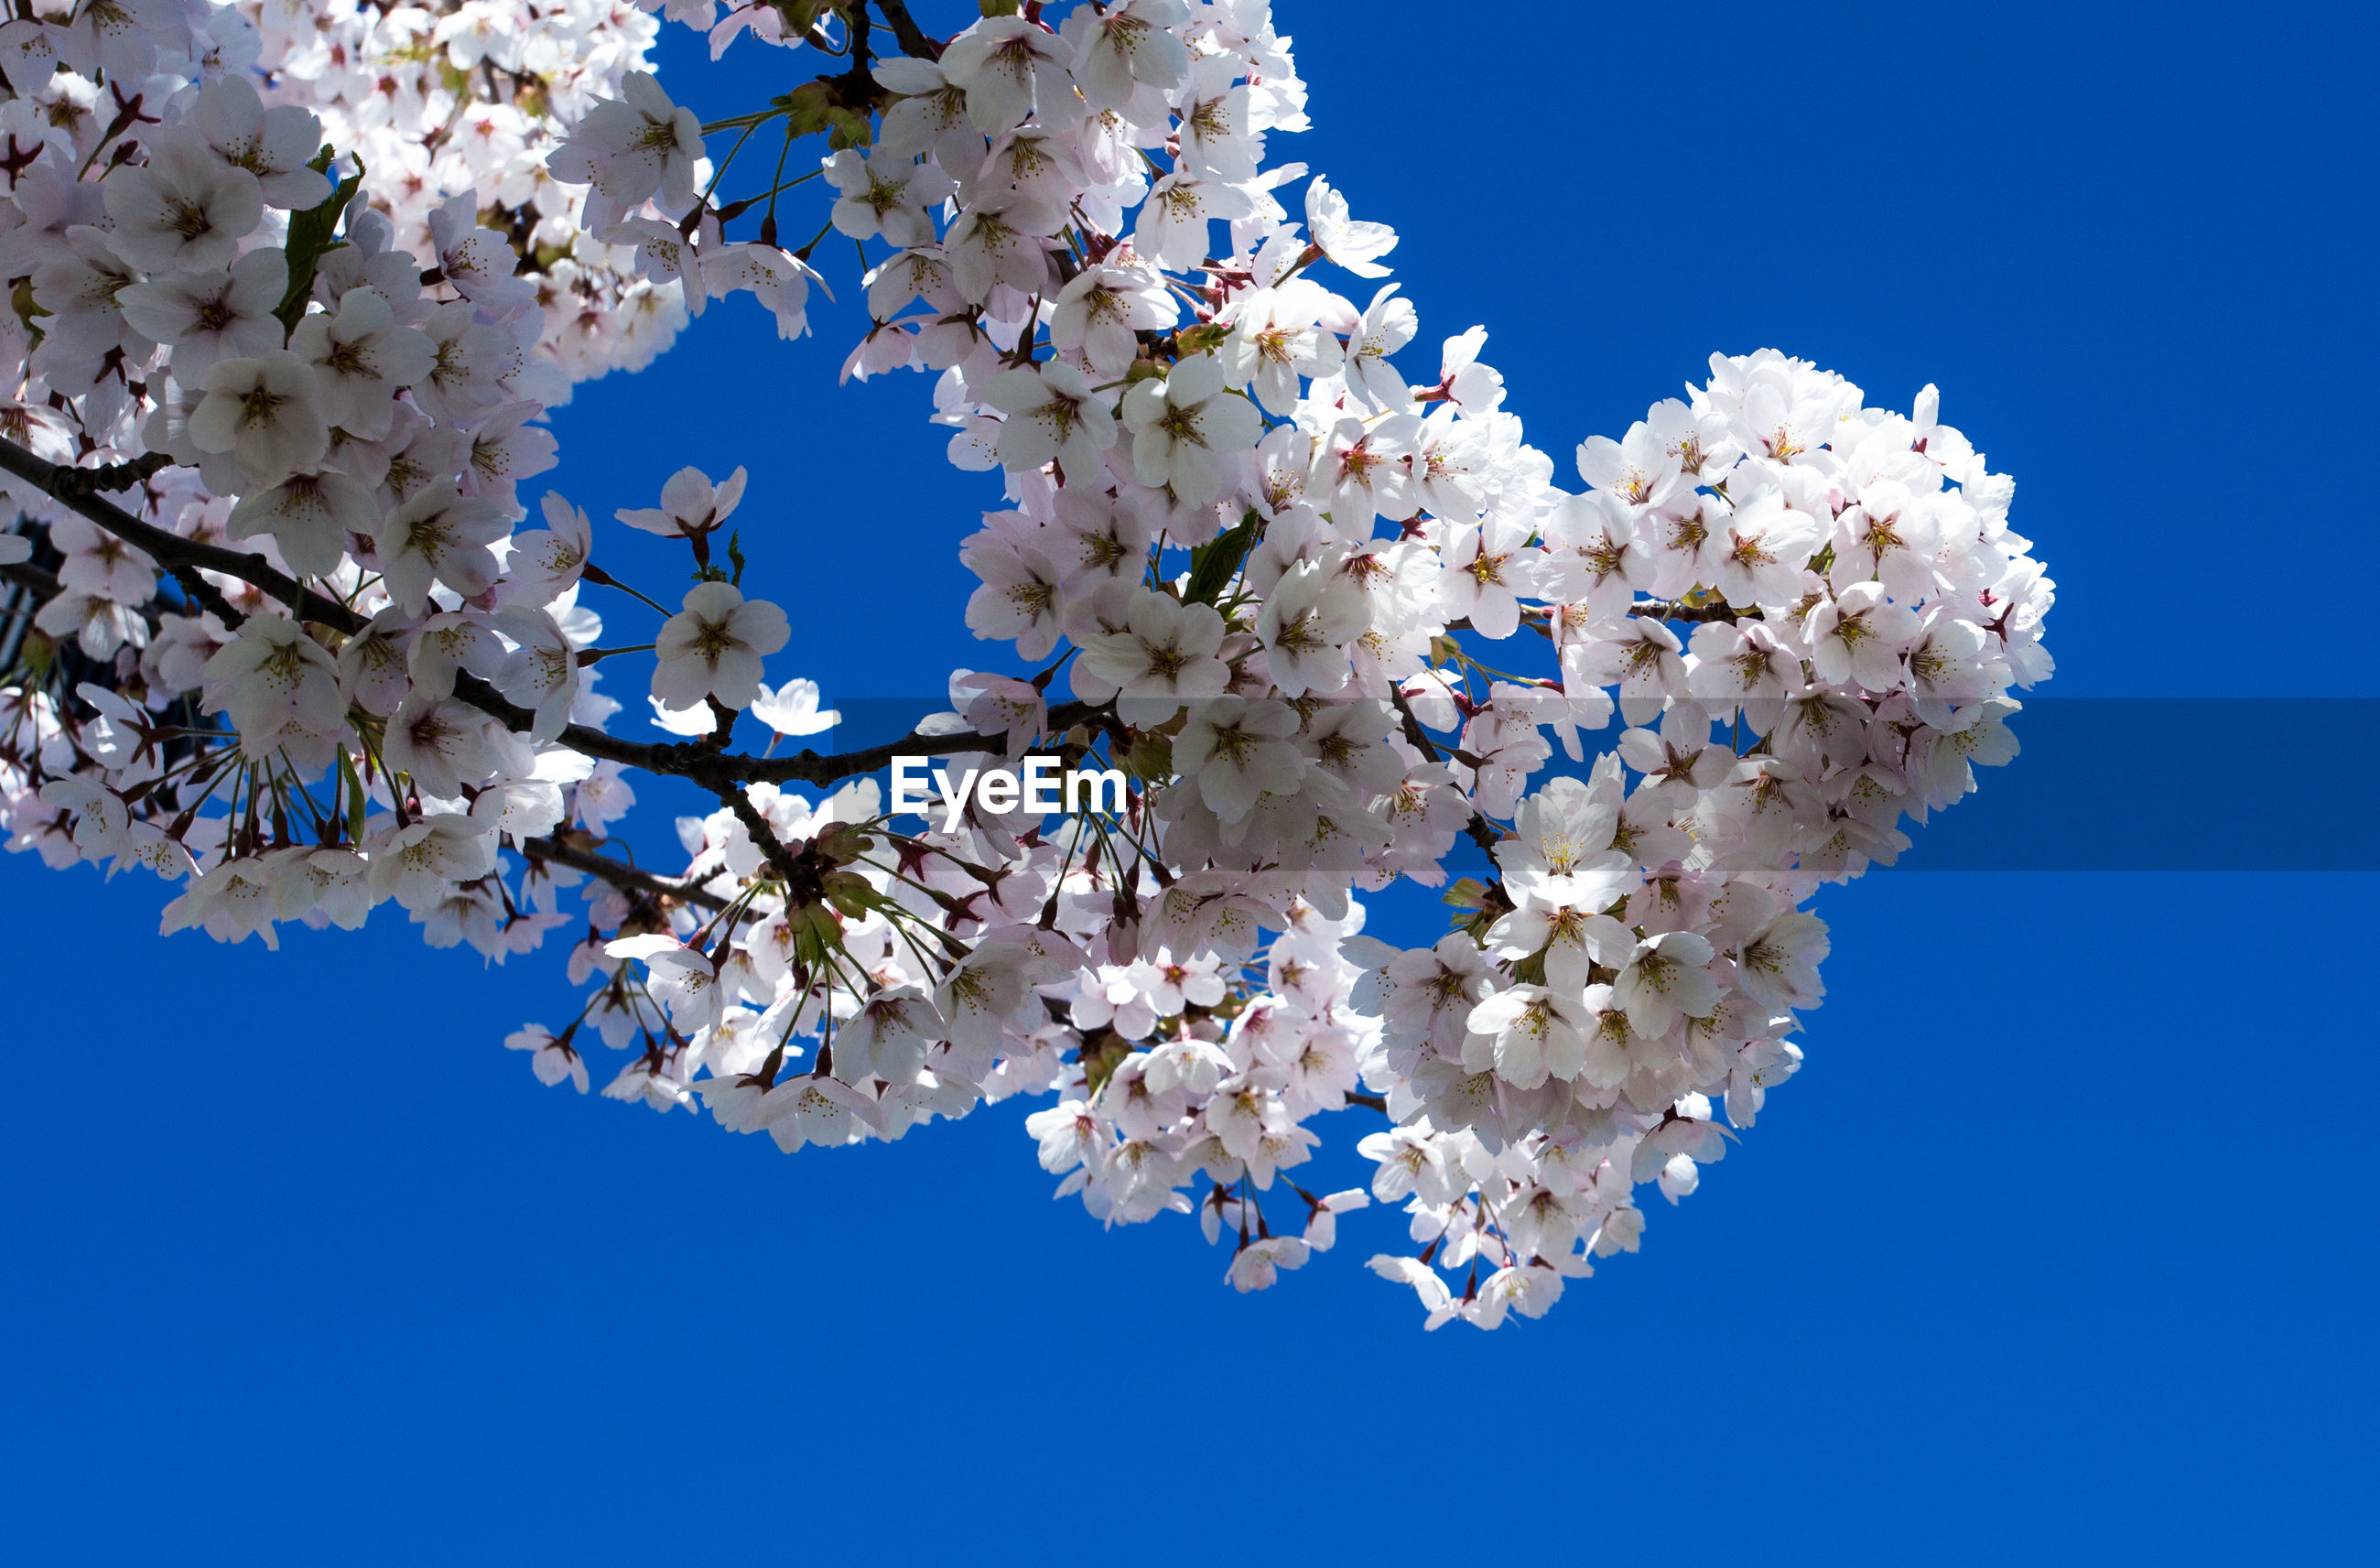 LOW ANGLE VIEW OF WHITE FLOWERS BLOOMING ON TREE AGAINST BLUE SKY